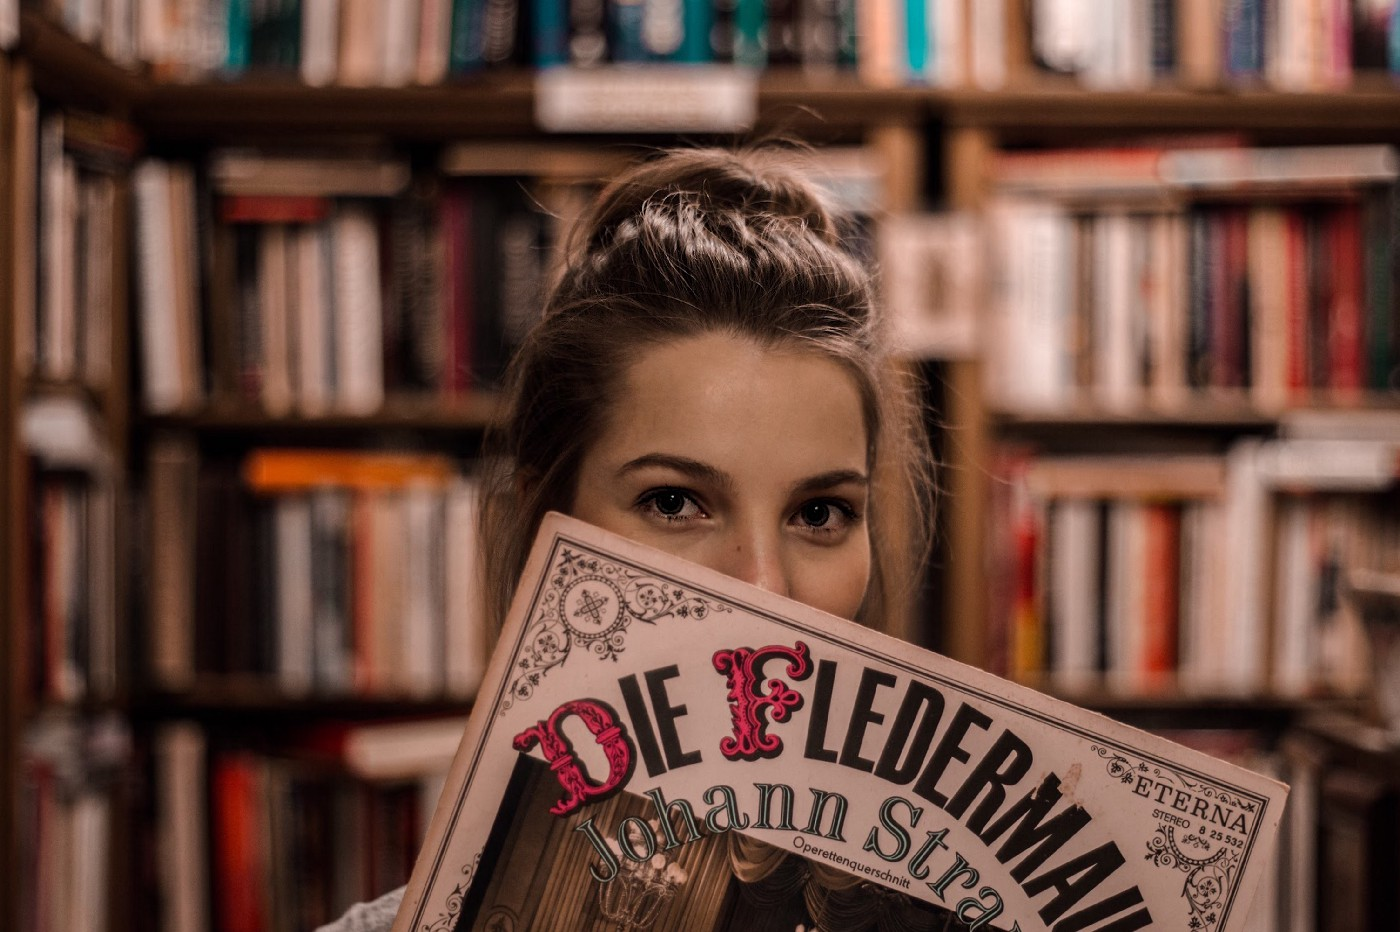 A stock photo of a young woman holding a record of Johann Strauss' Die Fledermaus. Presumably, she is in a library as there is a bookshelf in the background.